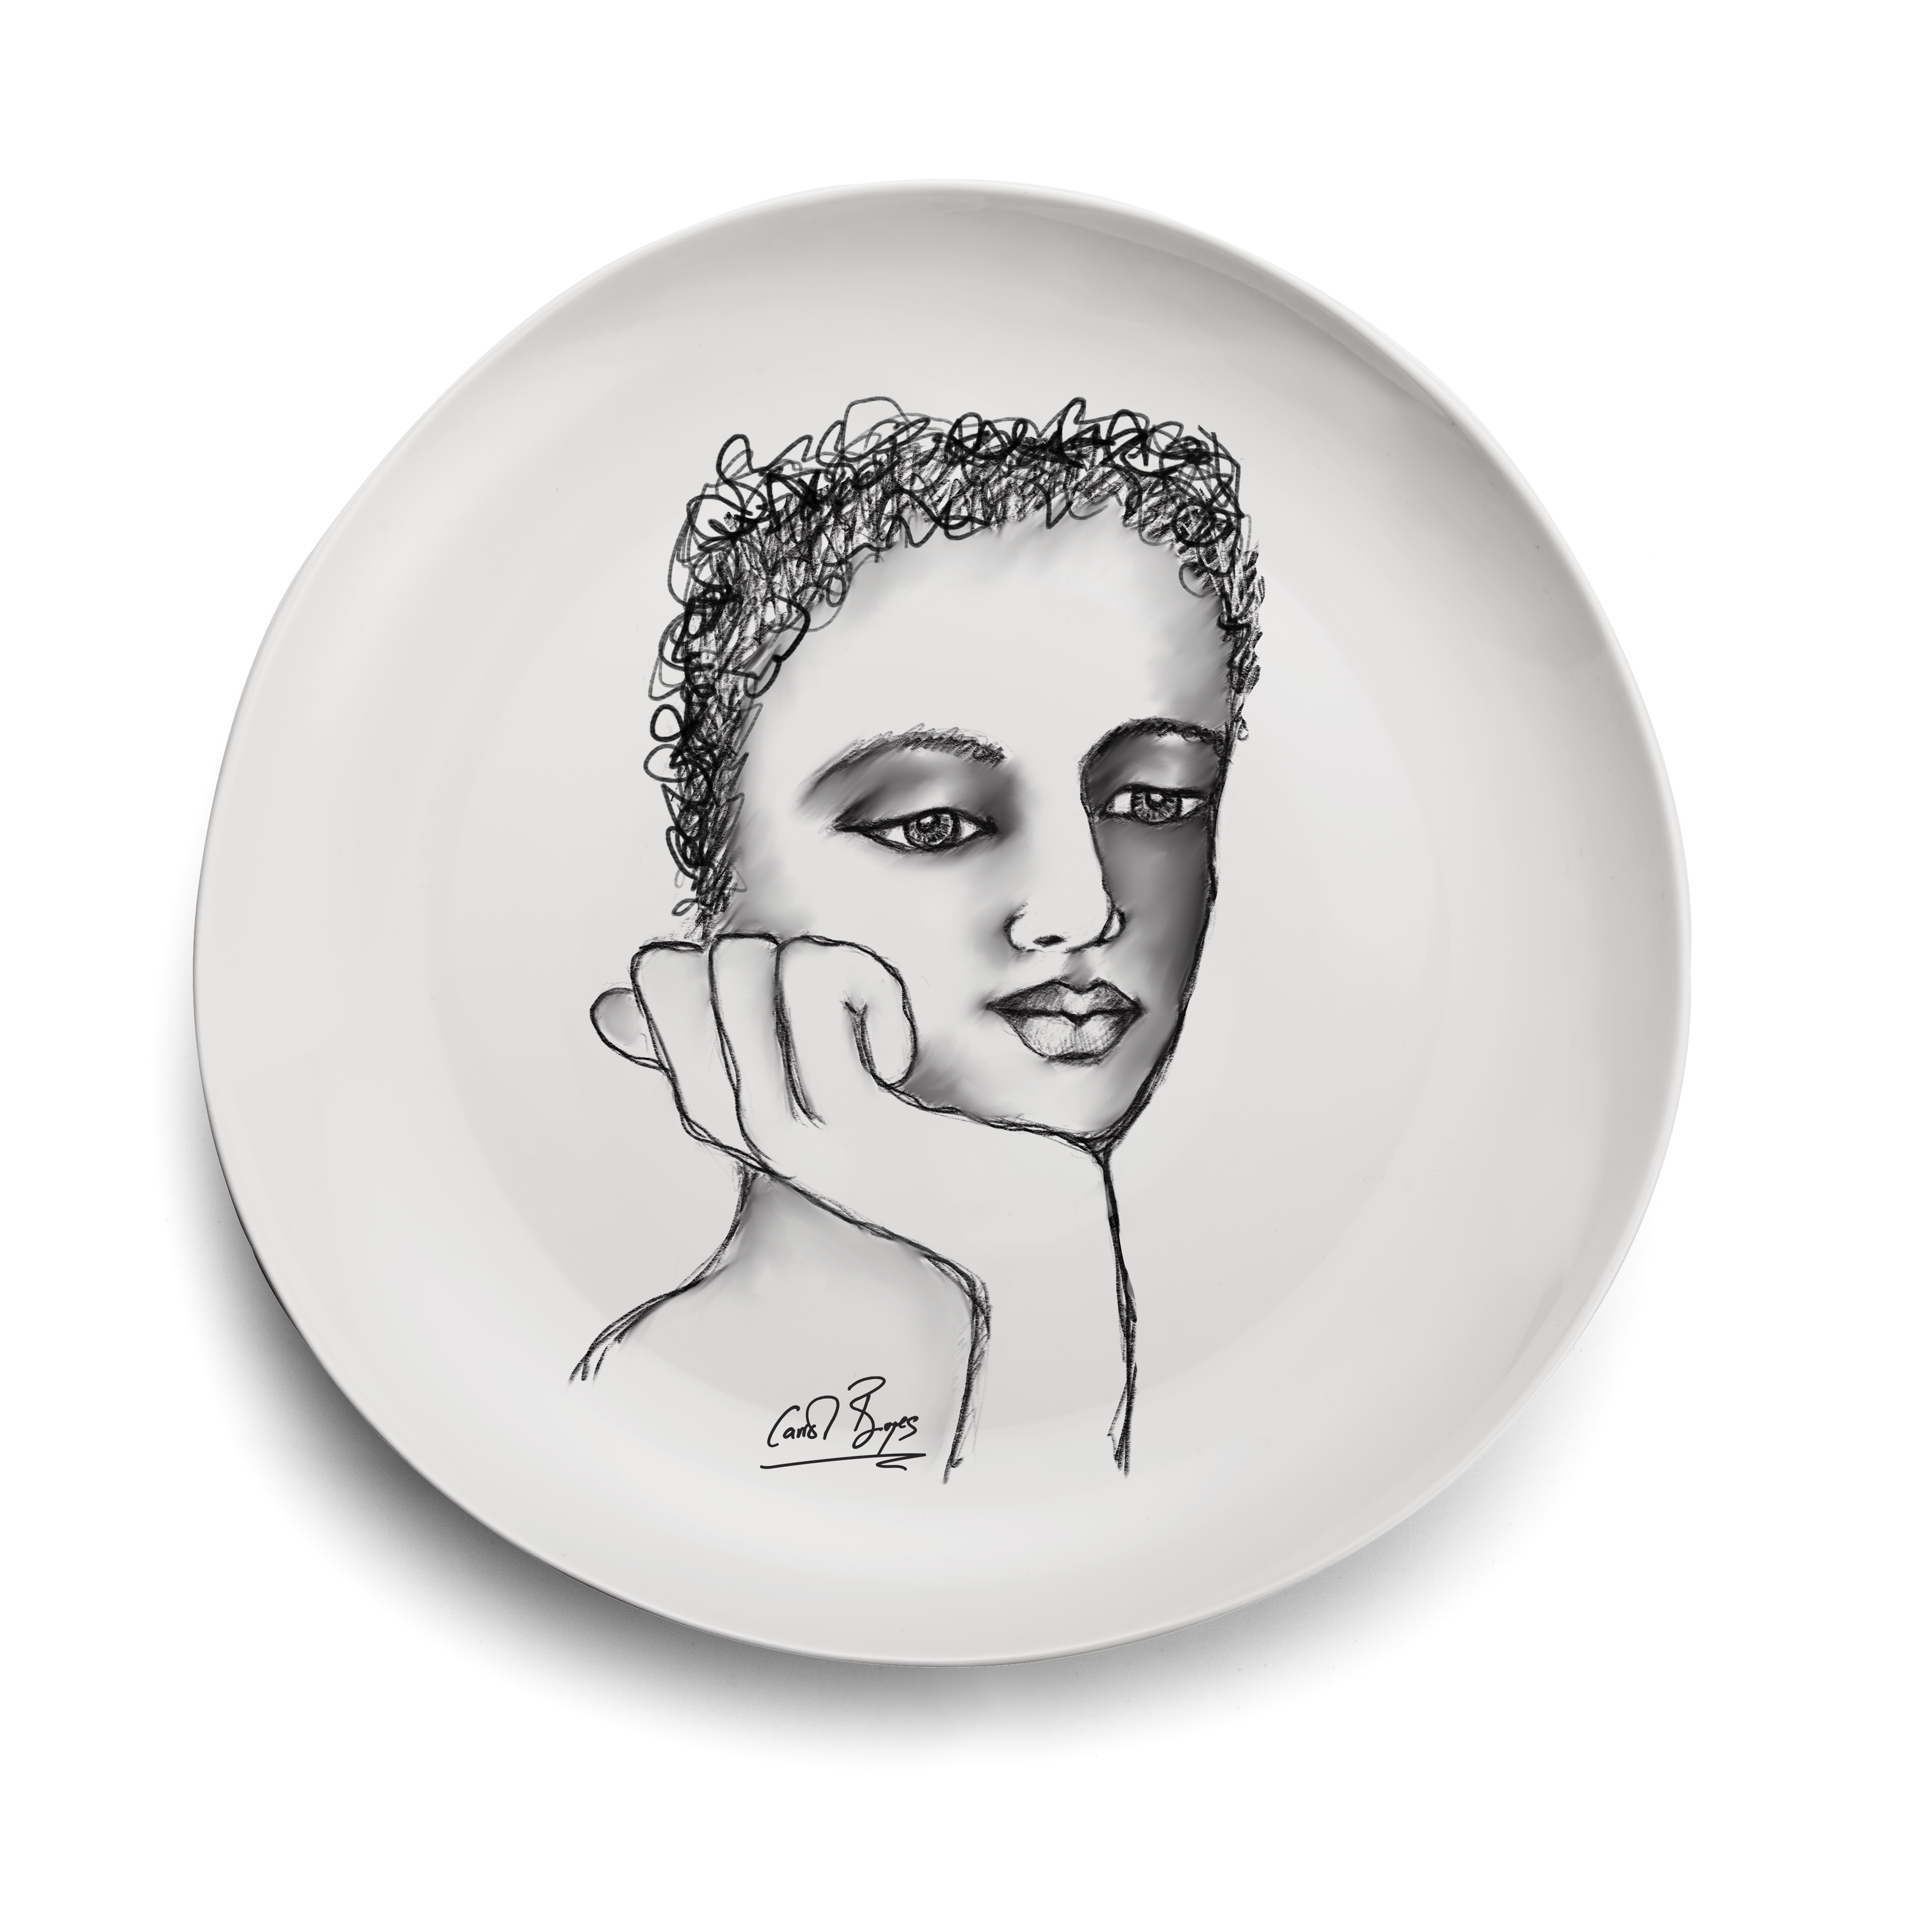 DINNER PLATE - just a thought